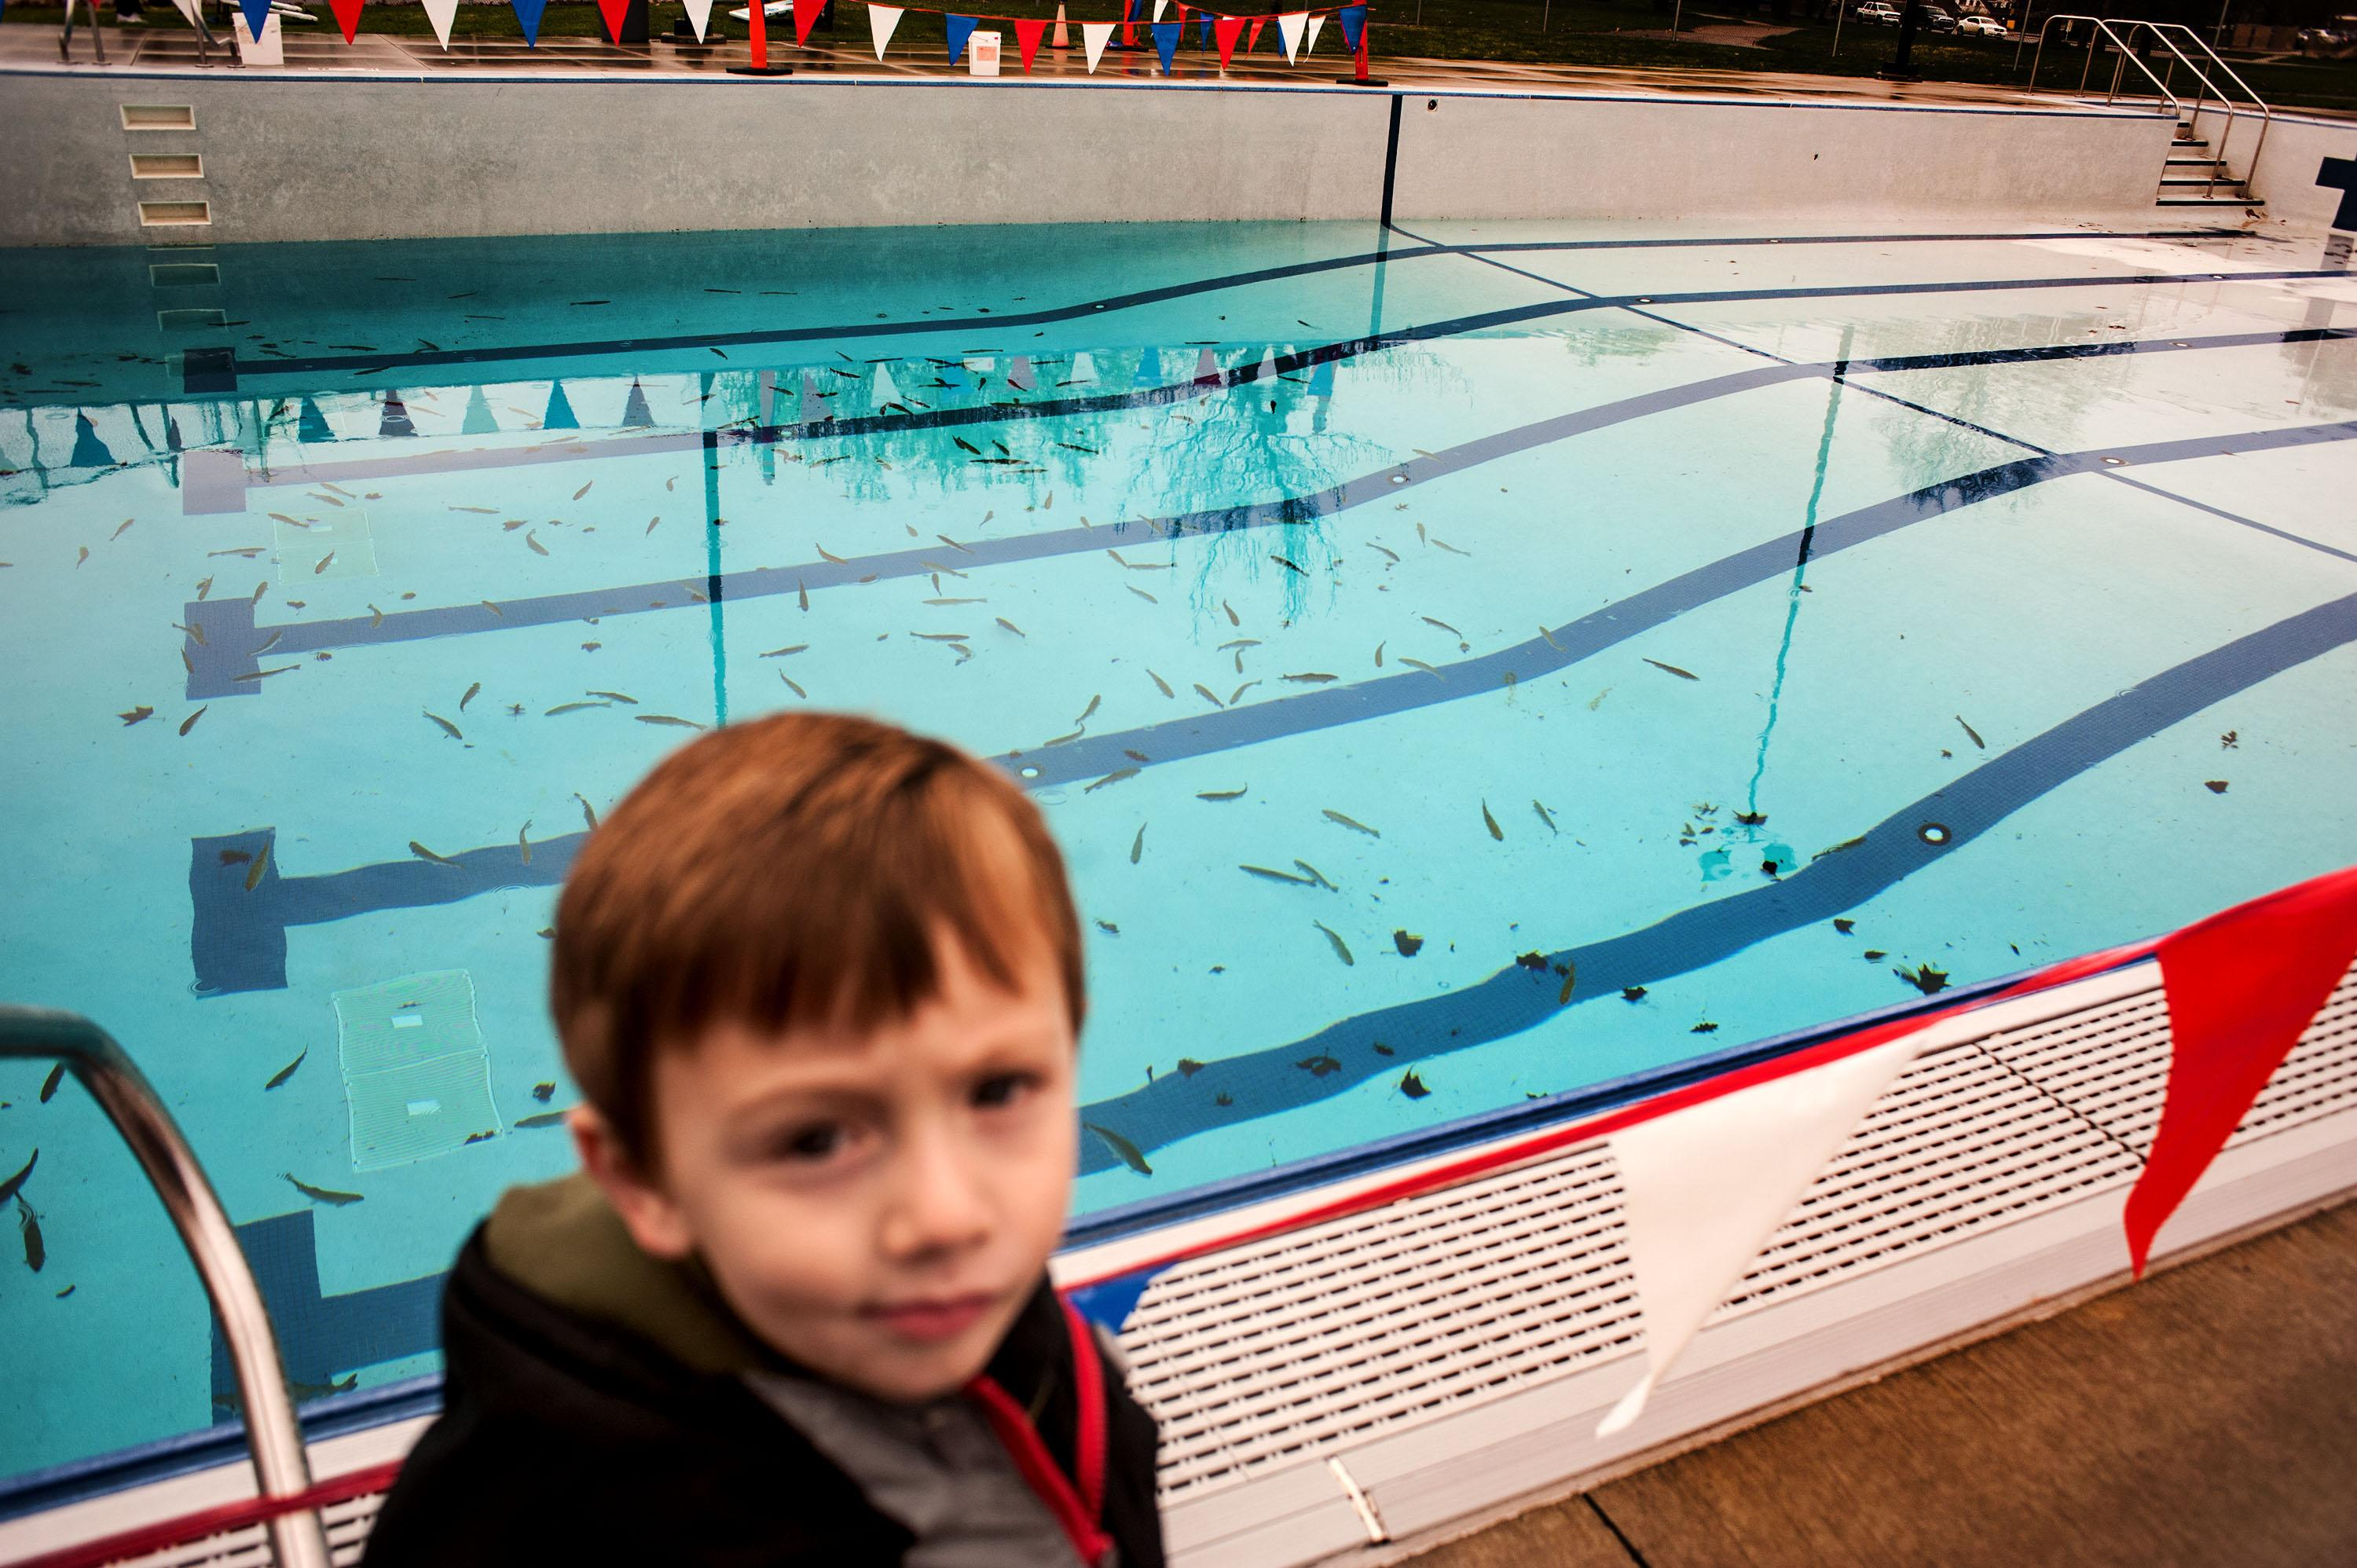 Kids cast their lines at city pool stocked with rainbow ...